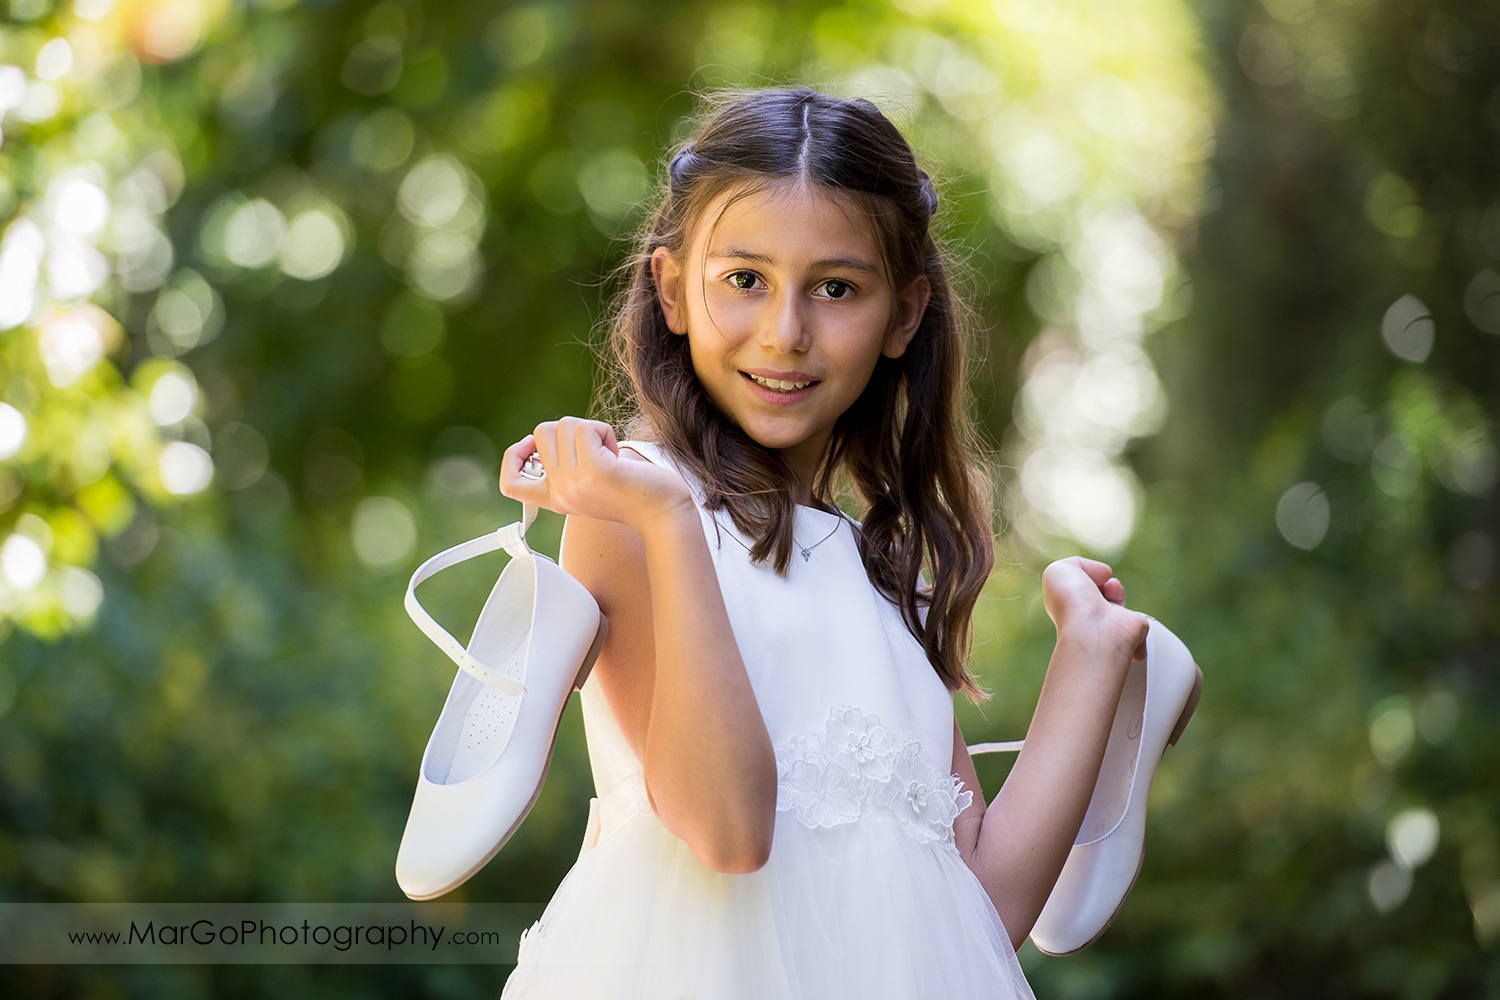 portrait of first communion girl in white dress holding white shoes at green background at Cafe Wisteria in Menlo Park